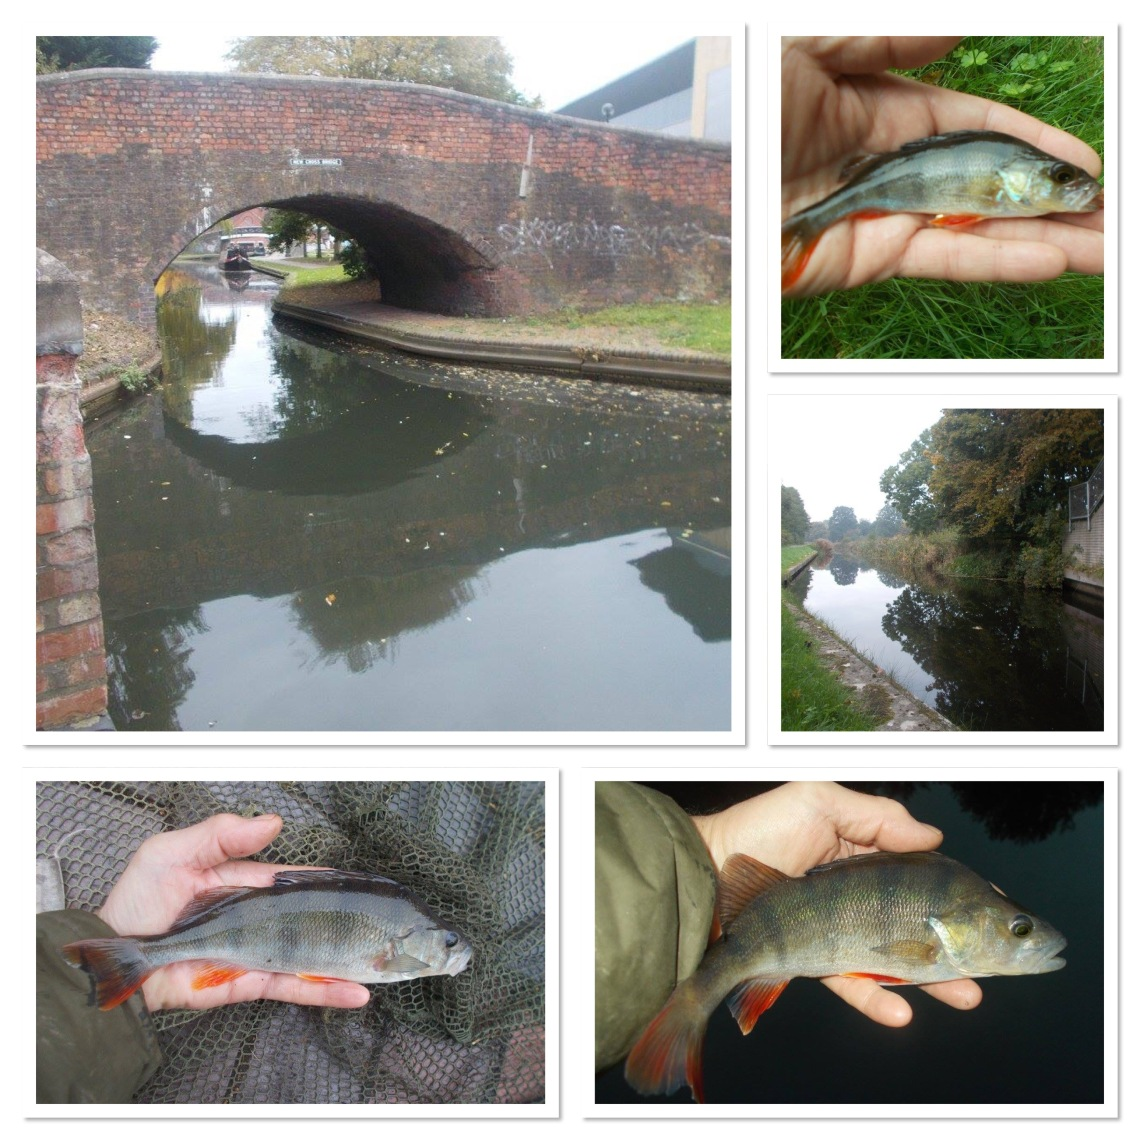 Canal perch feature in my angling a lot